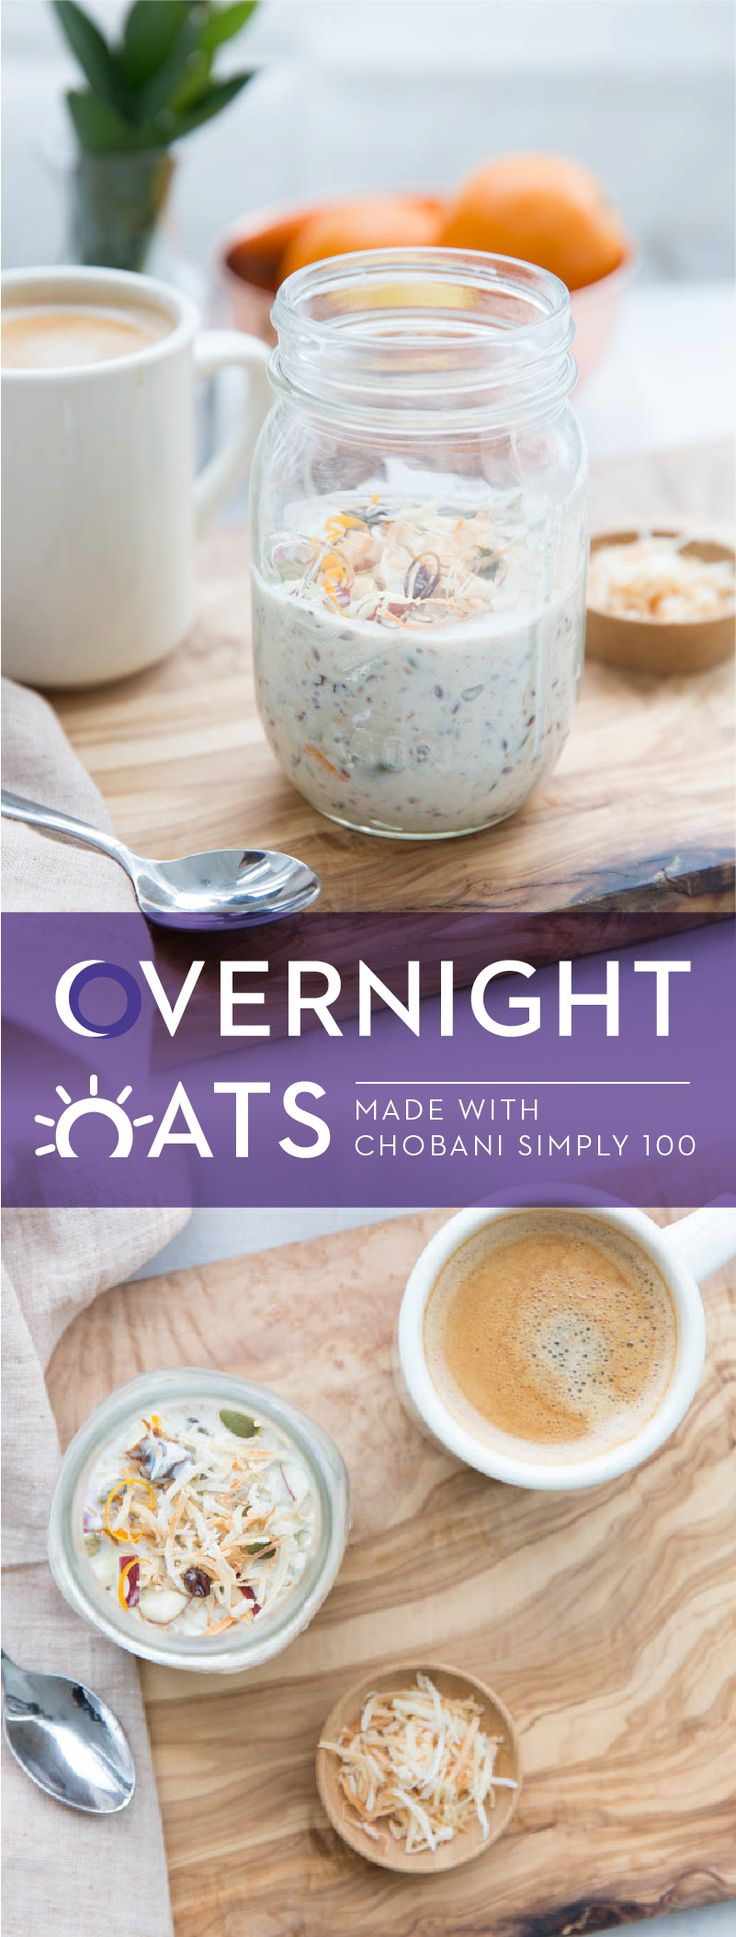 For a delicious and healthy breakfast, try Chobani's Easy Overnight Oats. First, heat milk and honey over medium heat until just below a simmer. Pour over oats and refrigerate until cold. Then, combine the rest of the ingredients into oats and mix well to combine. Refrigerate until chilled, serve and enjoy! Discover this delicious recipe and many more with Chobani Simply 100 Greek Yogurt.